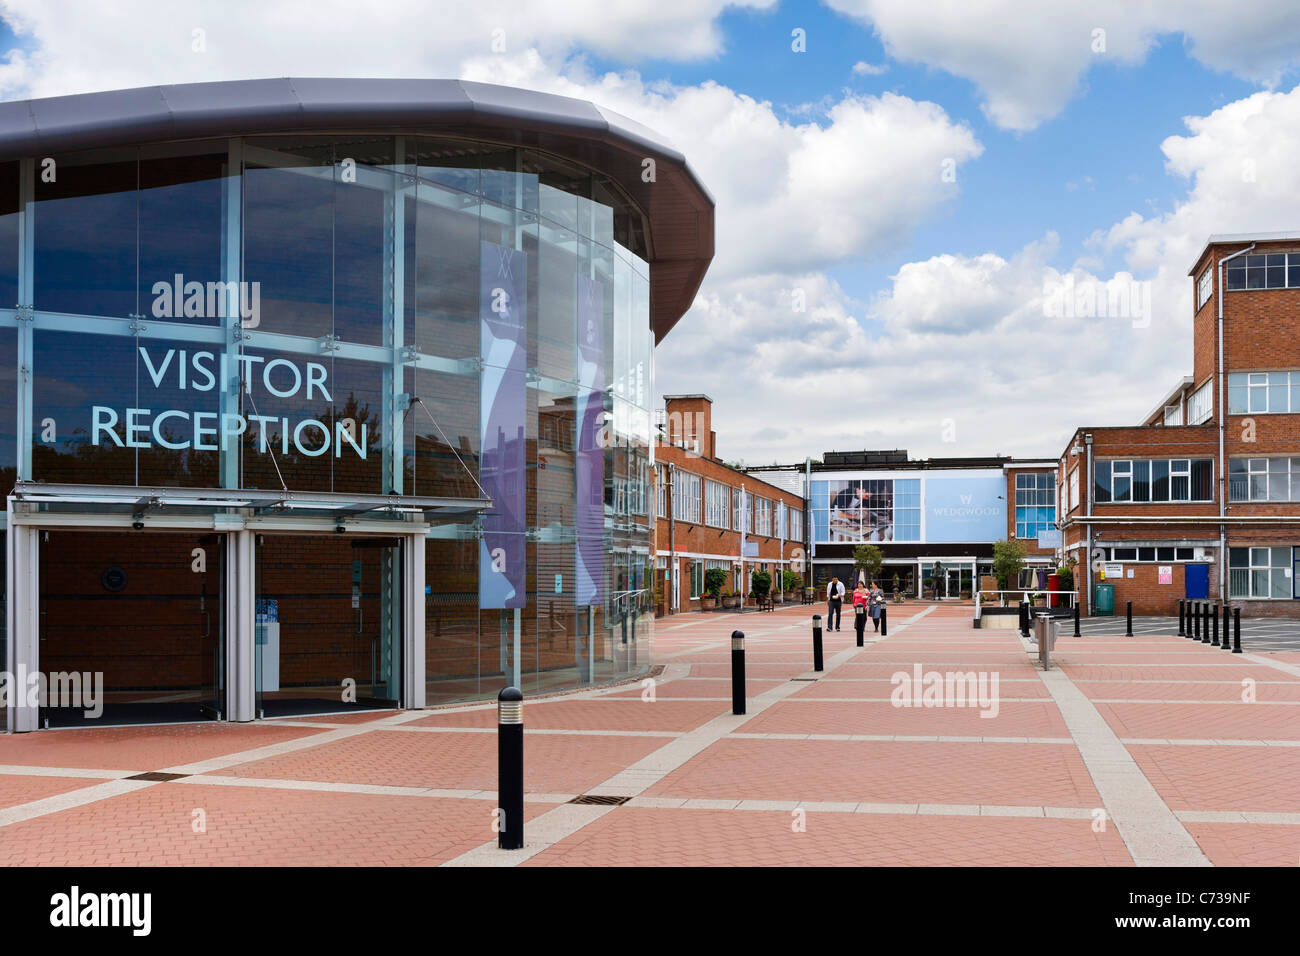 The Wedgwood Museum and Visitor Centre at the Wedgwood factory in Barlaston, Stoke-on-Trent, Staffordshire, England, - Stock Image